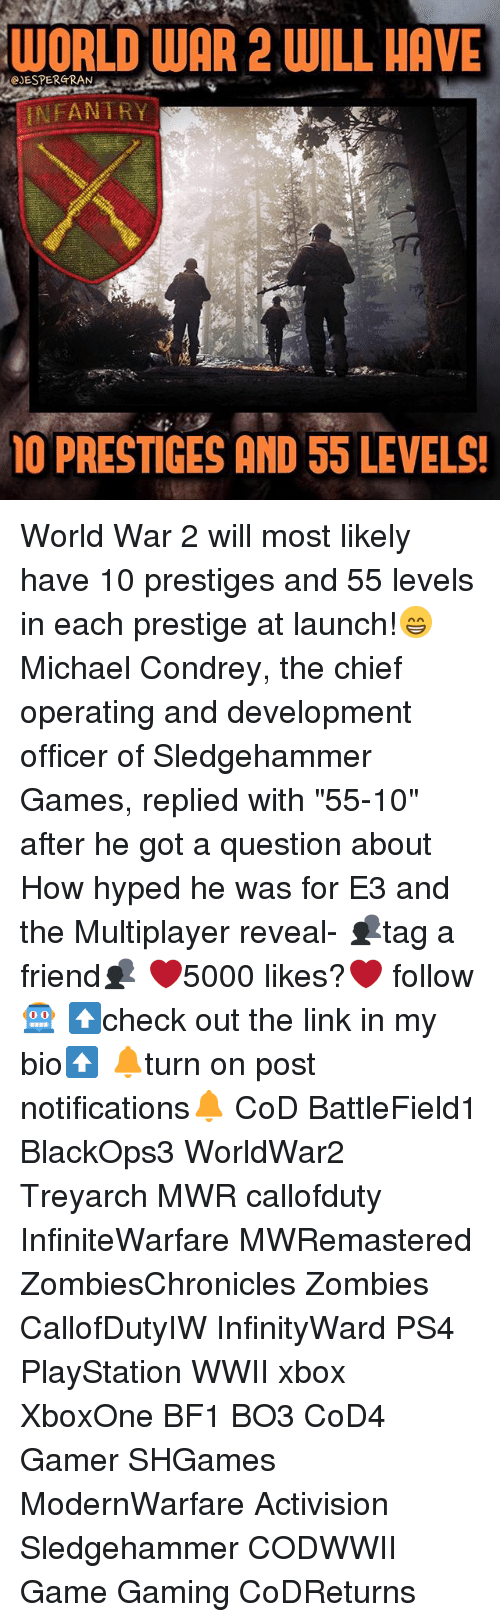 "Bf1: WORLD WAR 2 WILL HAVE  CJESPERGRAN  INFANTRY  PRESTIGES AND 55 LEVELS! World War 2 will most likely have 10 prestiges and 55 levels in each prestige at launch!😁 Michael Condrey, the chief operating and development officer of Sledgehammer Games, replied with ""55-10"" after he got a question about How hyped he was for E3 and the Multiplayer reveal- 👥tag a friend👥 ❤️5000 likes?❤️ follow🤖 ⬆️check out the link in my bio⬆️ 🔔turn on post notifications🔔 CoD BattleField1 BlackOps3 WorldWar2 Treyarch MWR callofduty InfiniteWarfare MWRemastered ZombiesChronicles Zombies CallofDutyIW InfinityWard PS4 PlayStation WWII xbox XboxOne BF1 BO3 CoD4 Gamer SHGames ModernWarfare Activision Sledgehammer CODWWII Game Gaming CoDReturns"